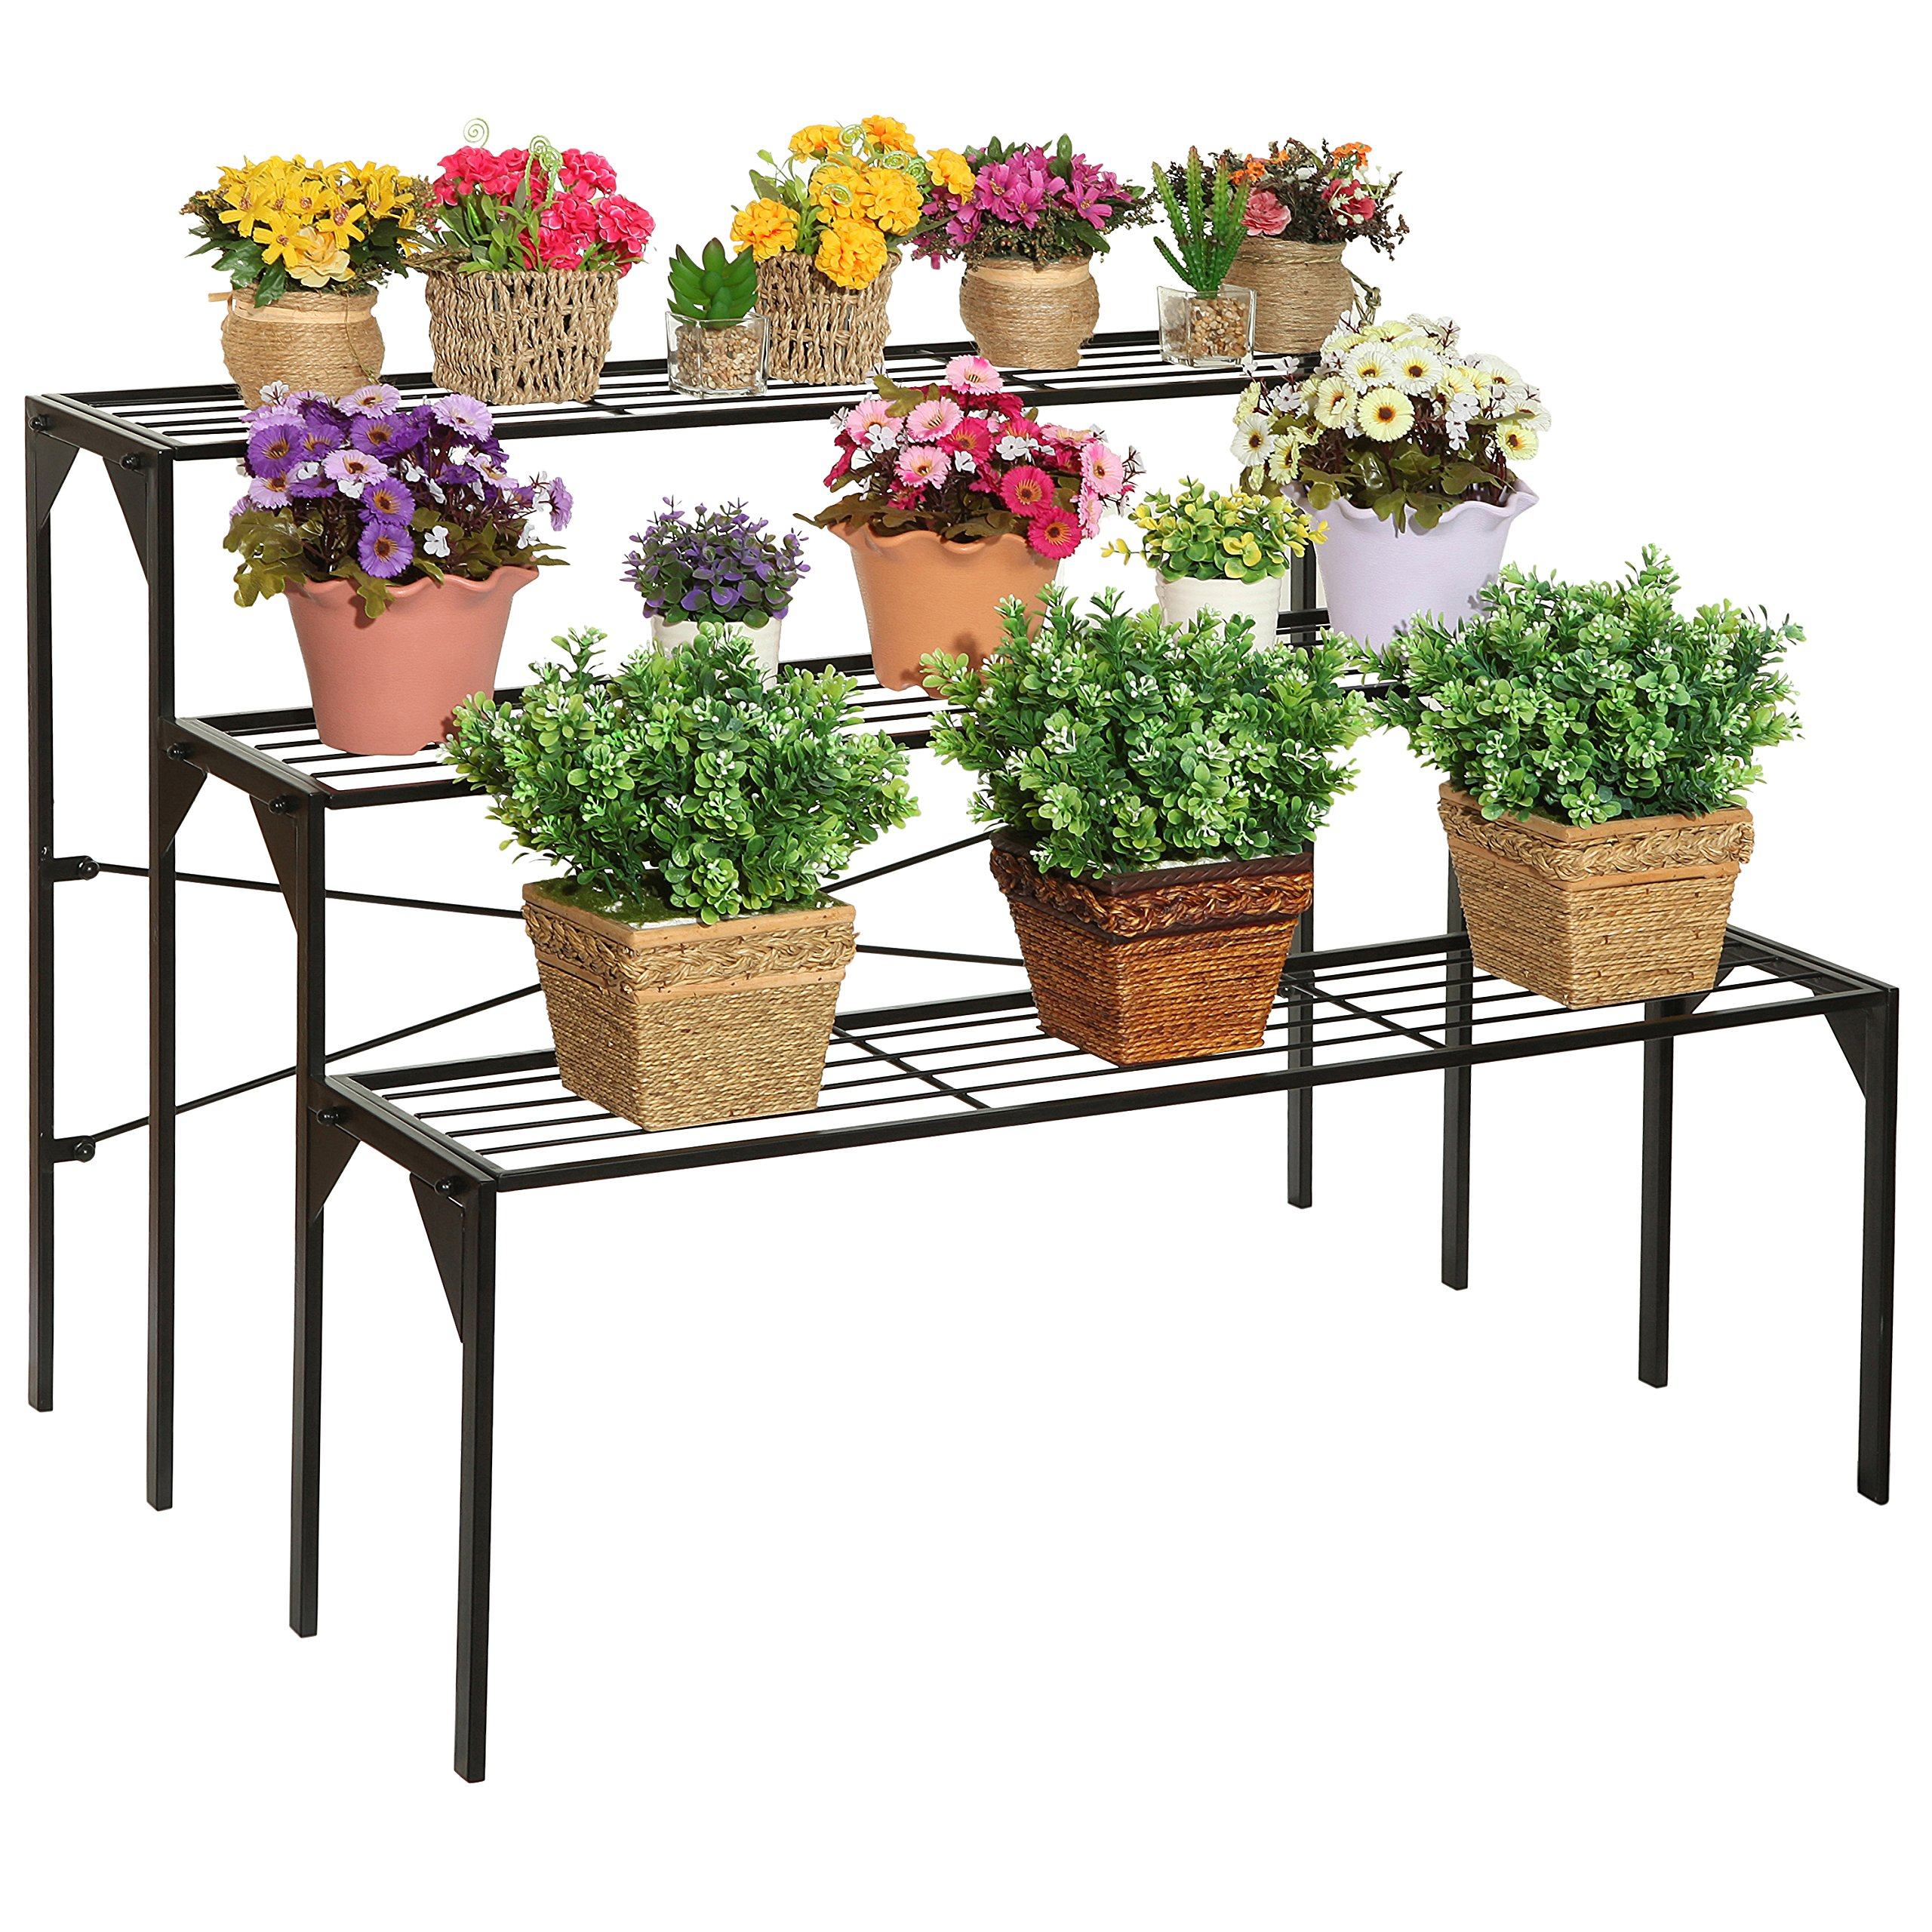 Large Modern Black Metal 3 Tier Shelf Flower Plant Display Stand Rack / Freestanding Home Decor Shelves by MyGift